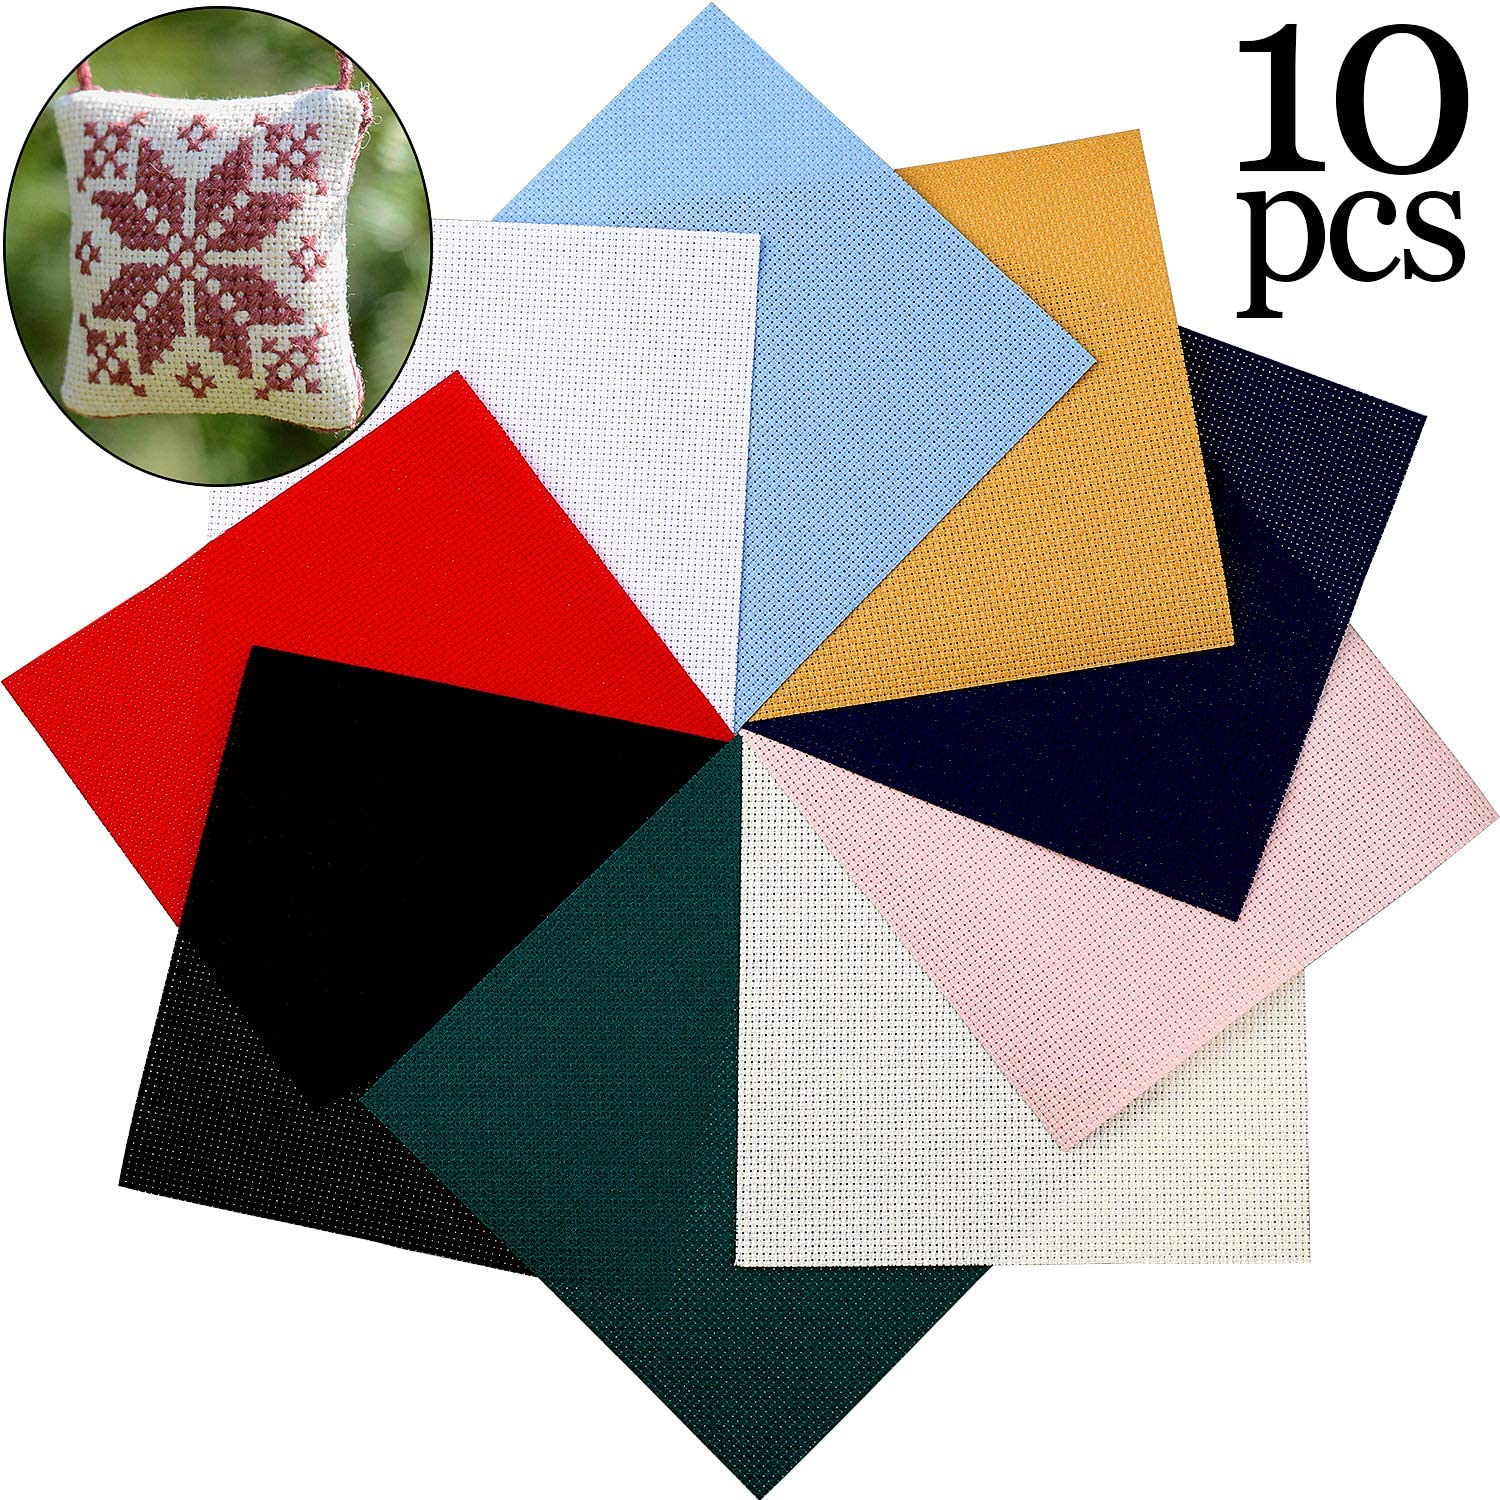 White 12 by 18-Inch 5 Pieces Cross Stitching Cloth 14 Count Aida Cloth Fabric Cross Stitch Cloth for DIY Embroidery Needlework Sewing Handcraft